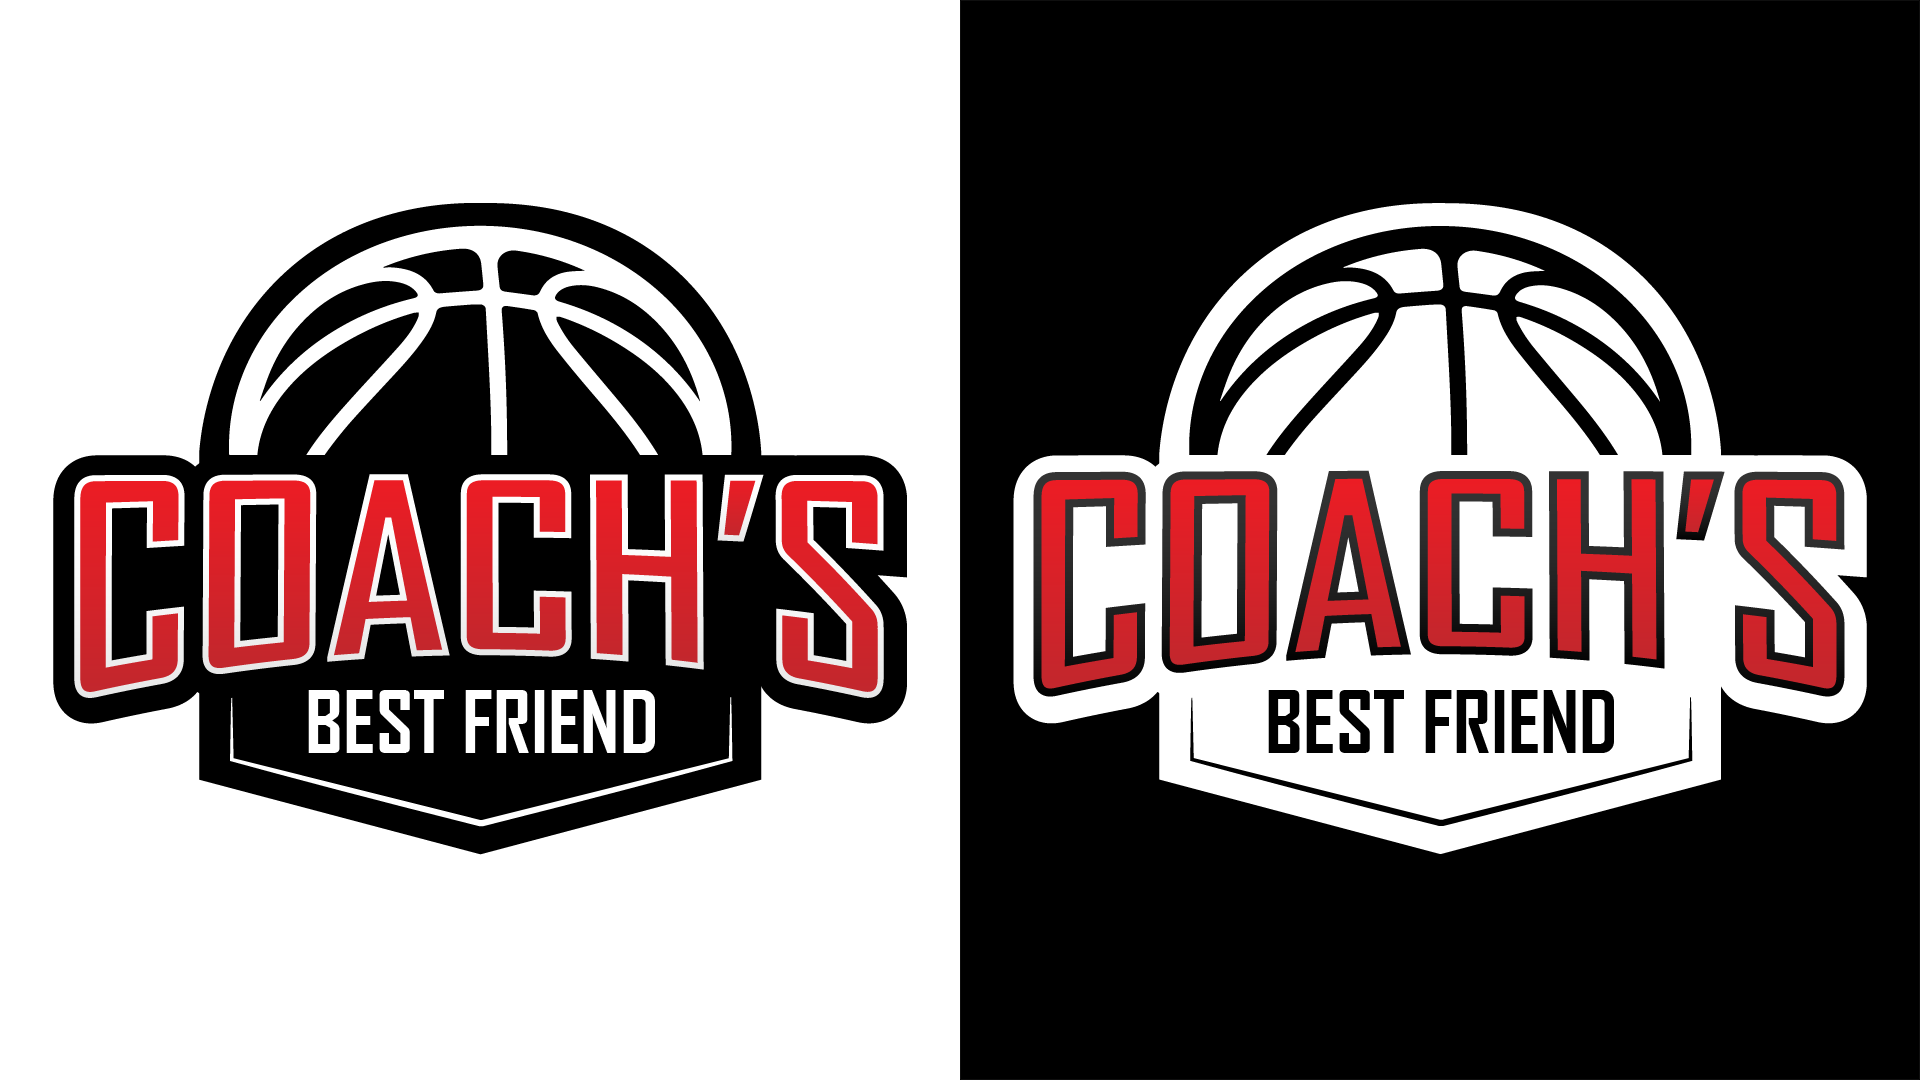 Coach's Best Friend logo